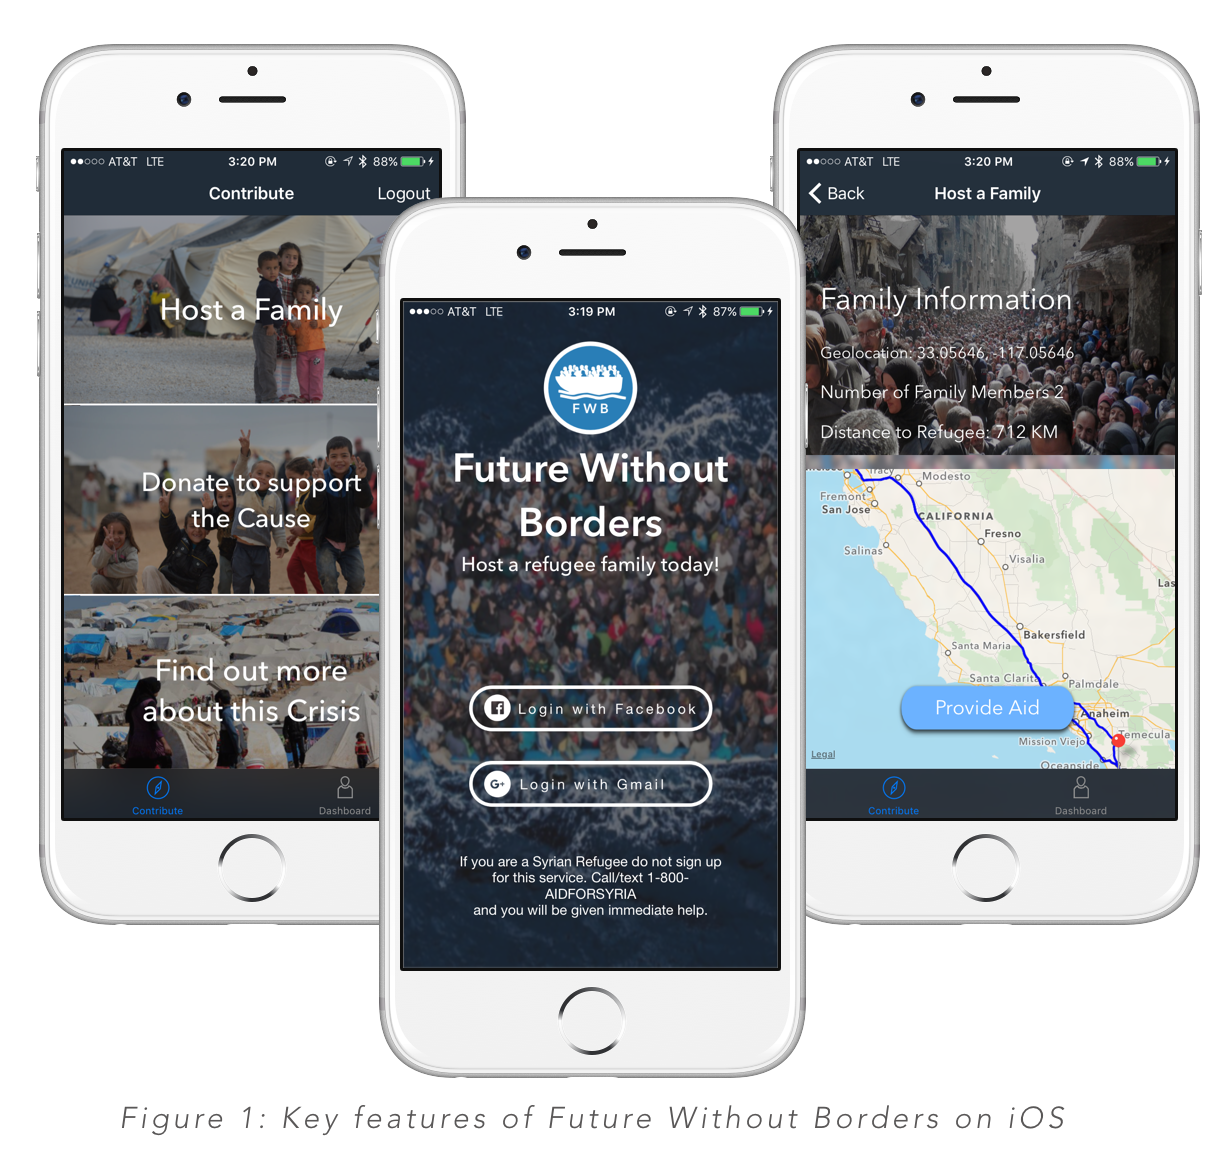 Future Without Borders Iphone mockup